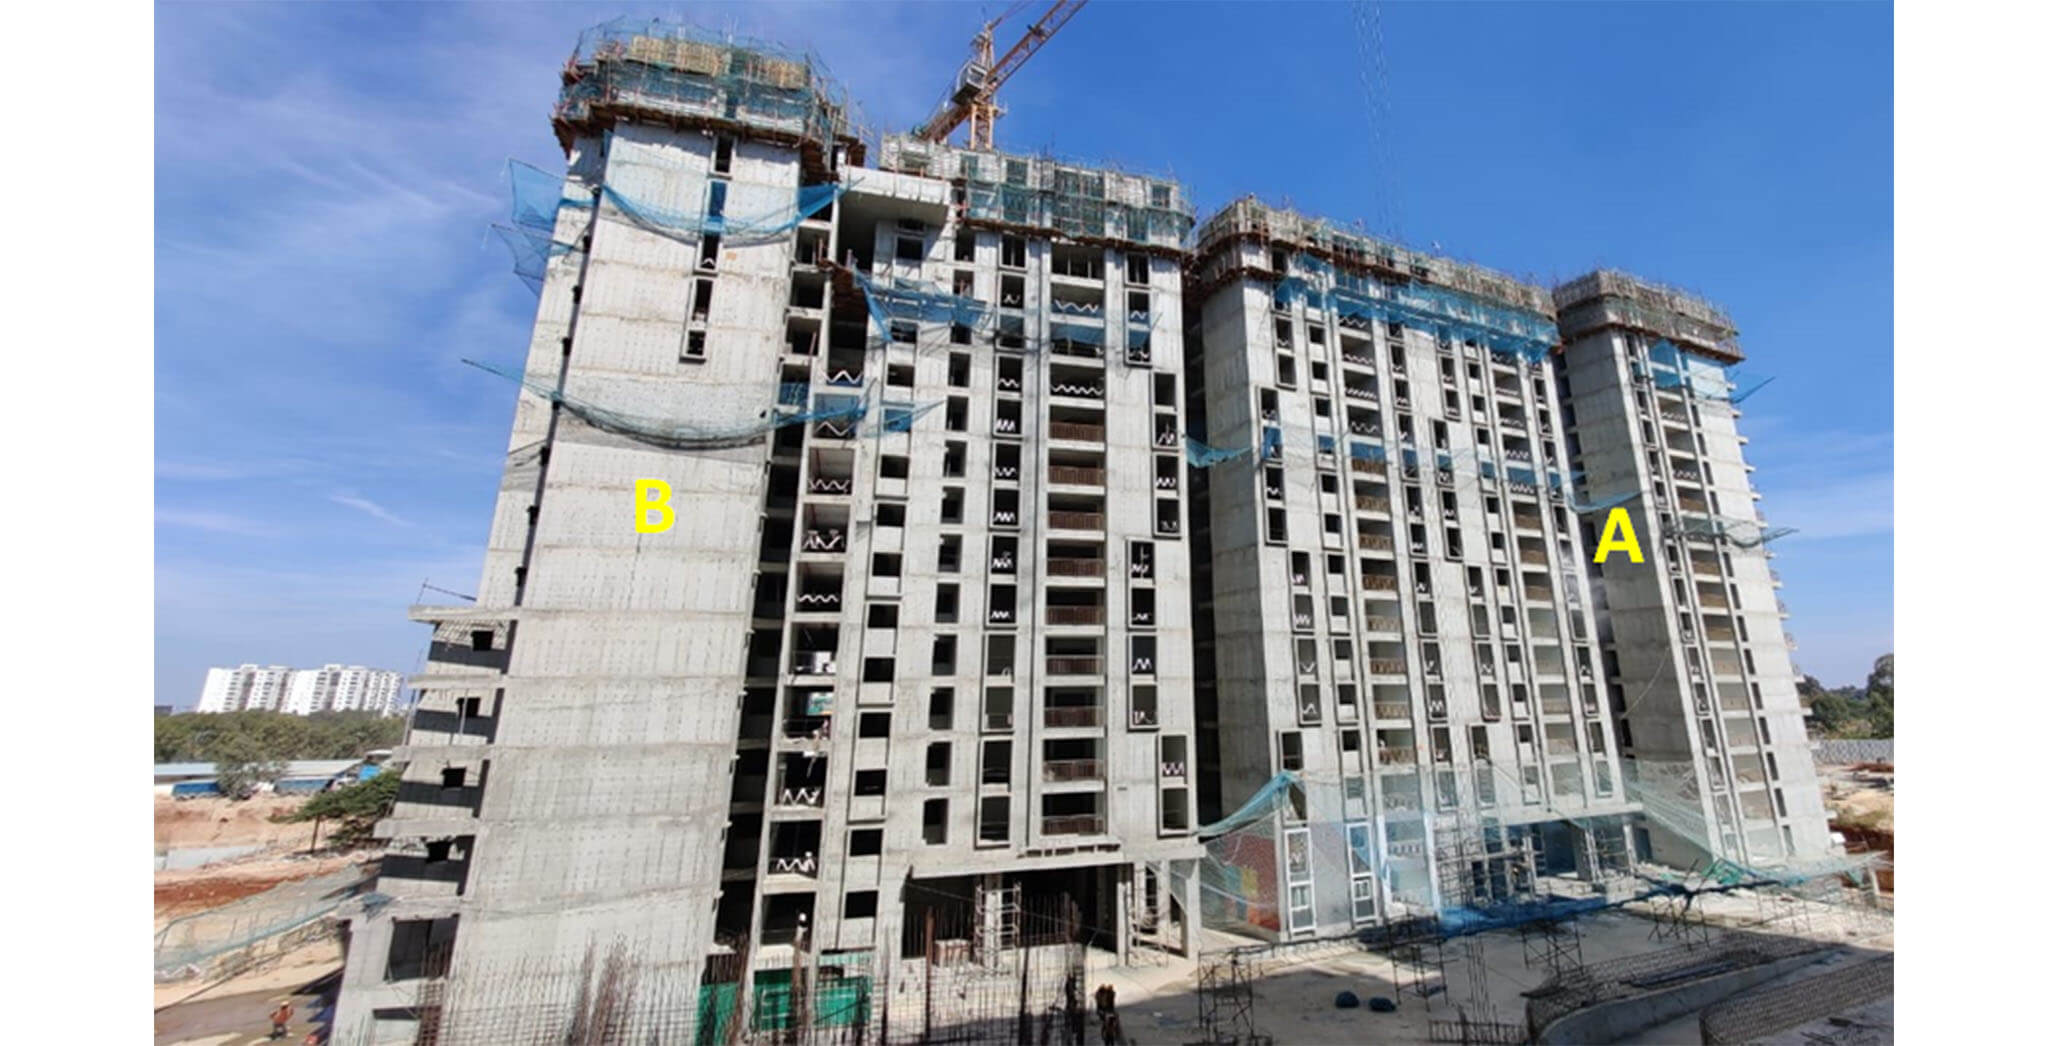 Dec 2020 - Serene: Tower A—18th floor slab structure work-in-progress; Tower B—17th floor slab structure work-in-progress